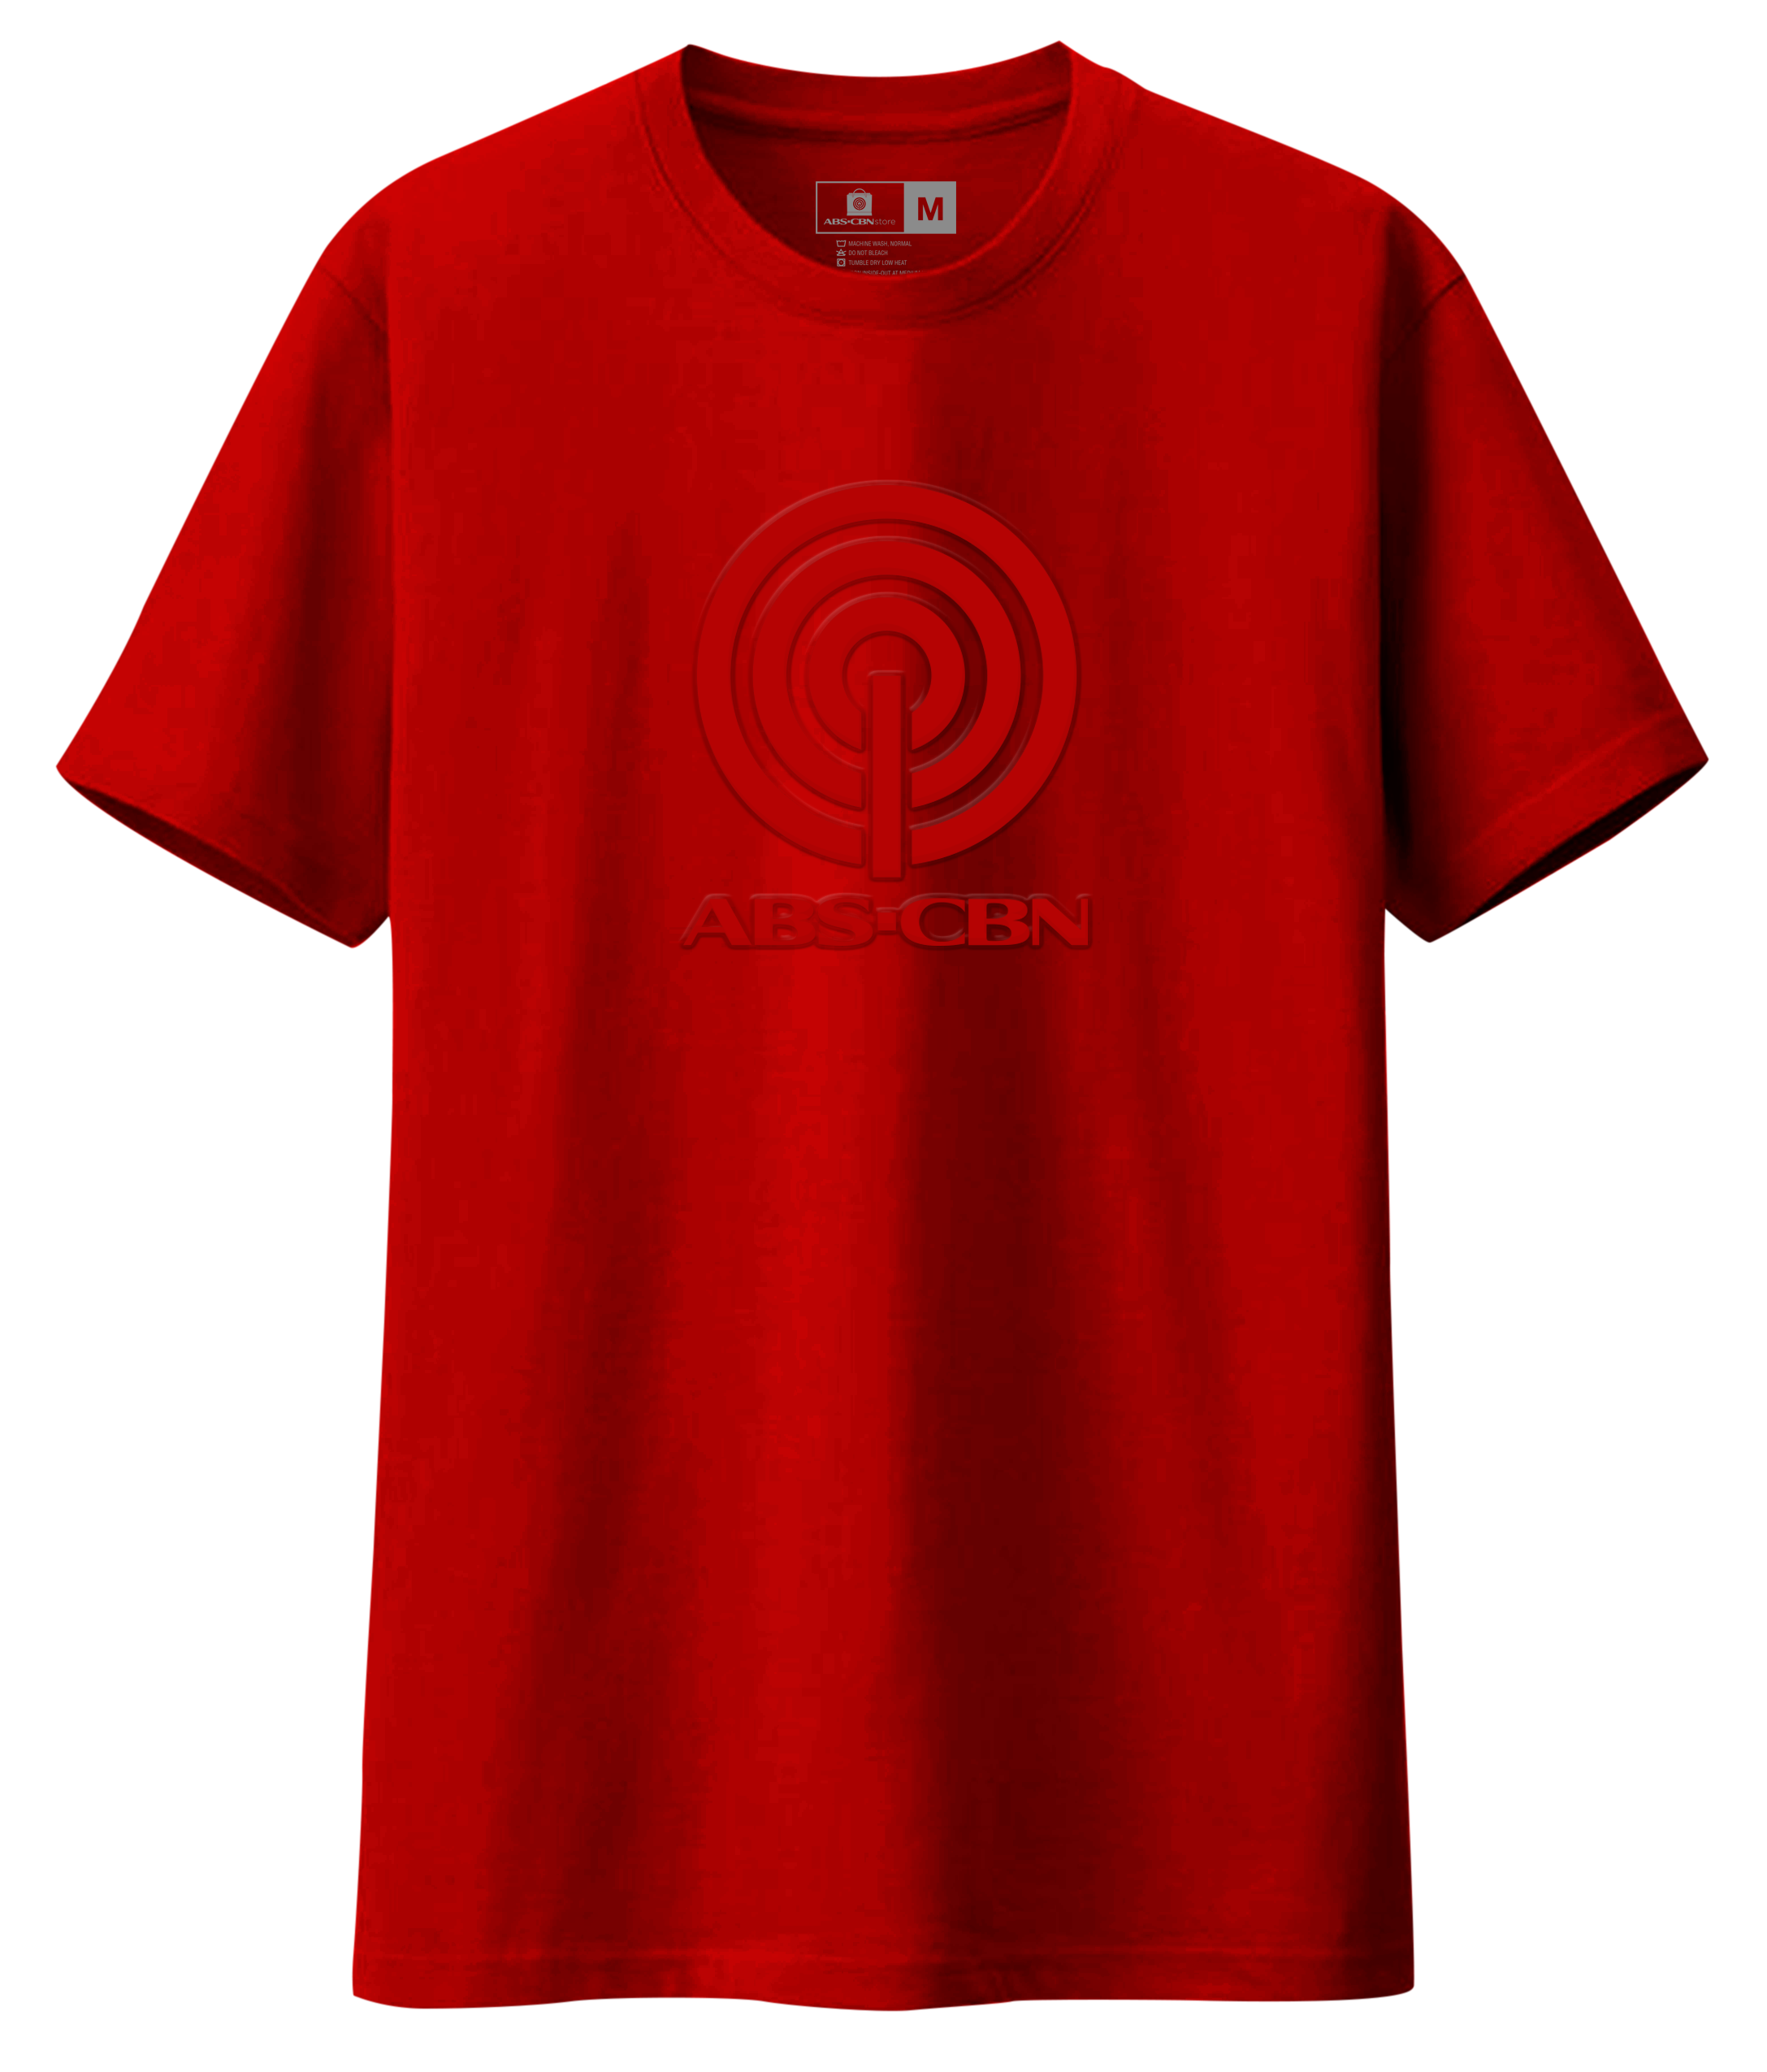 ABS-CBN Shirt Red